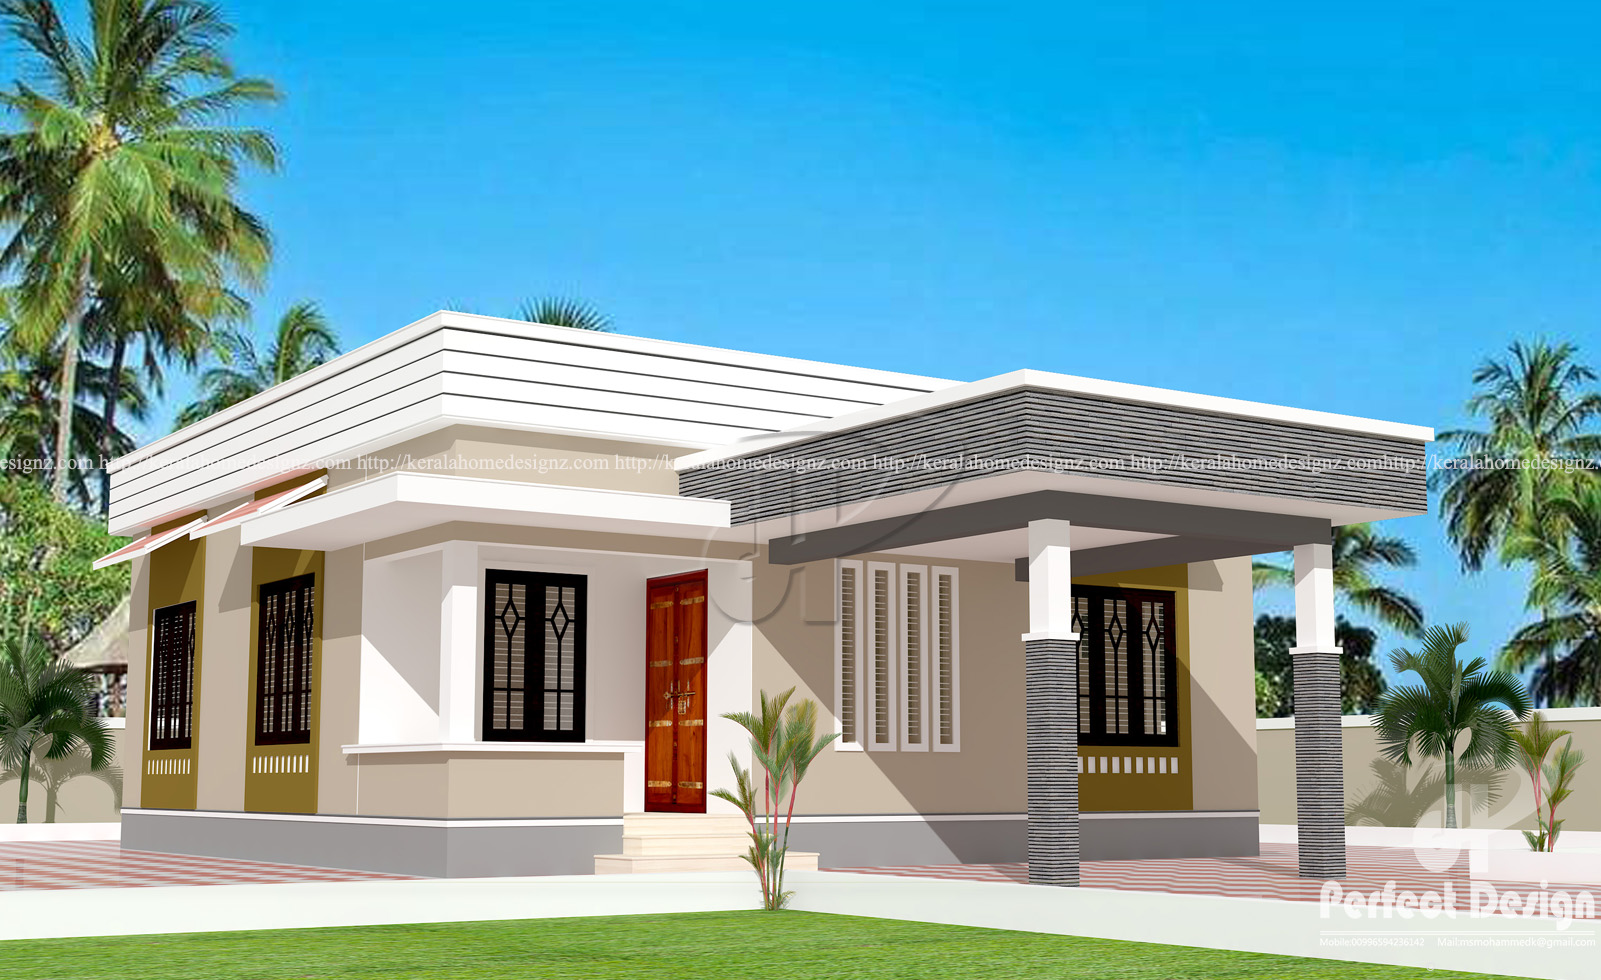 829 sq ft low cost home designs kerala home design for House plans and designs